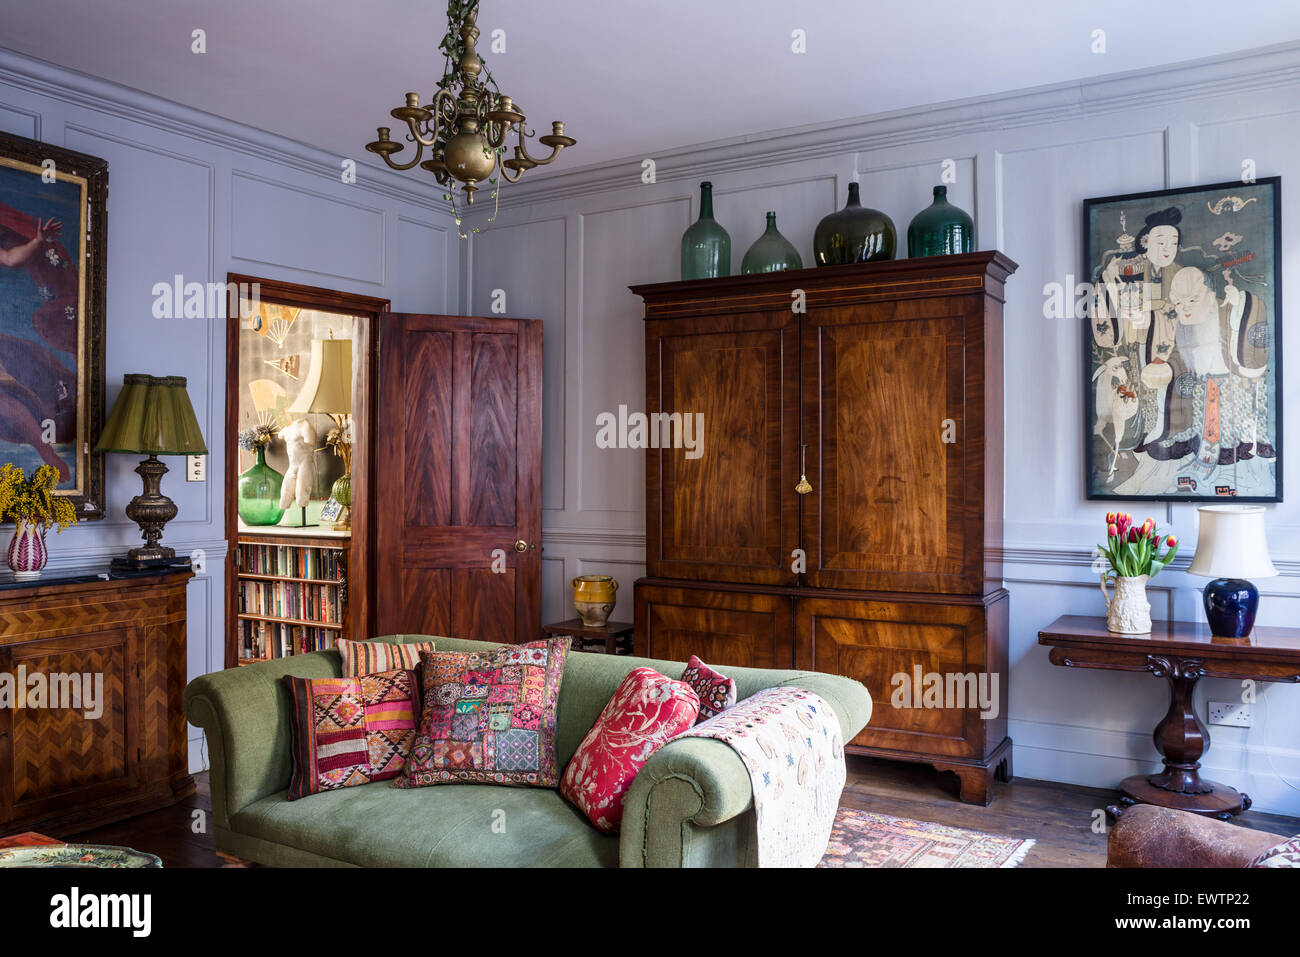 Indian And Antique French Cushions On Green Sofa In Living Room With Large  Antique Armoire And Oriental Artwork